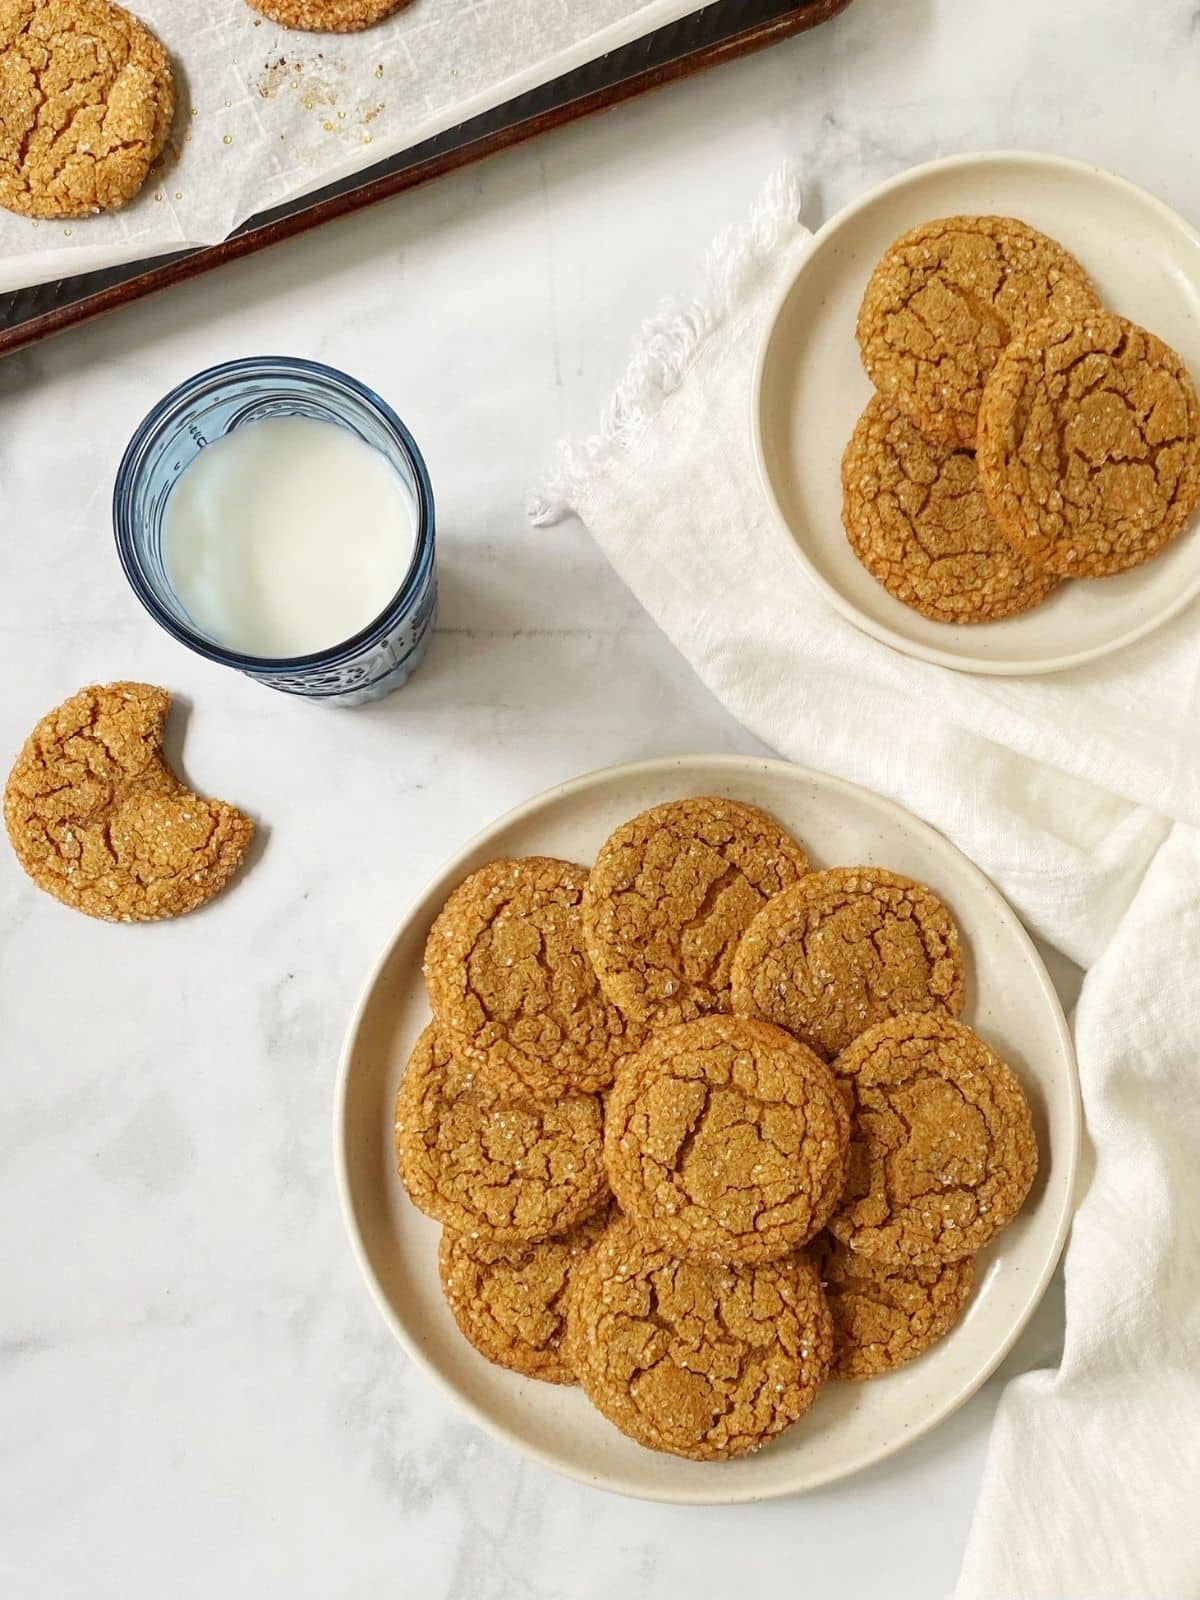 top down shot of cookies on a plate next to a glass of milk.